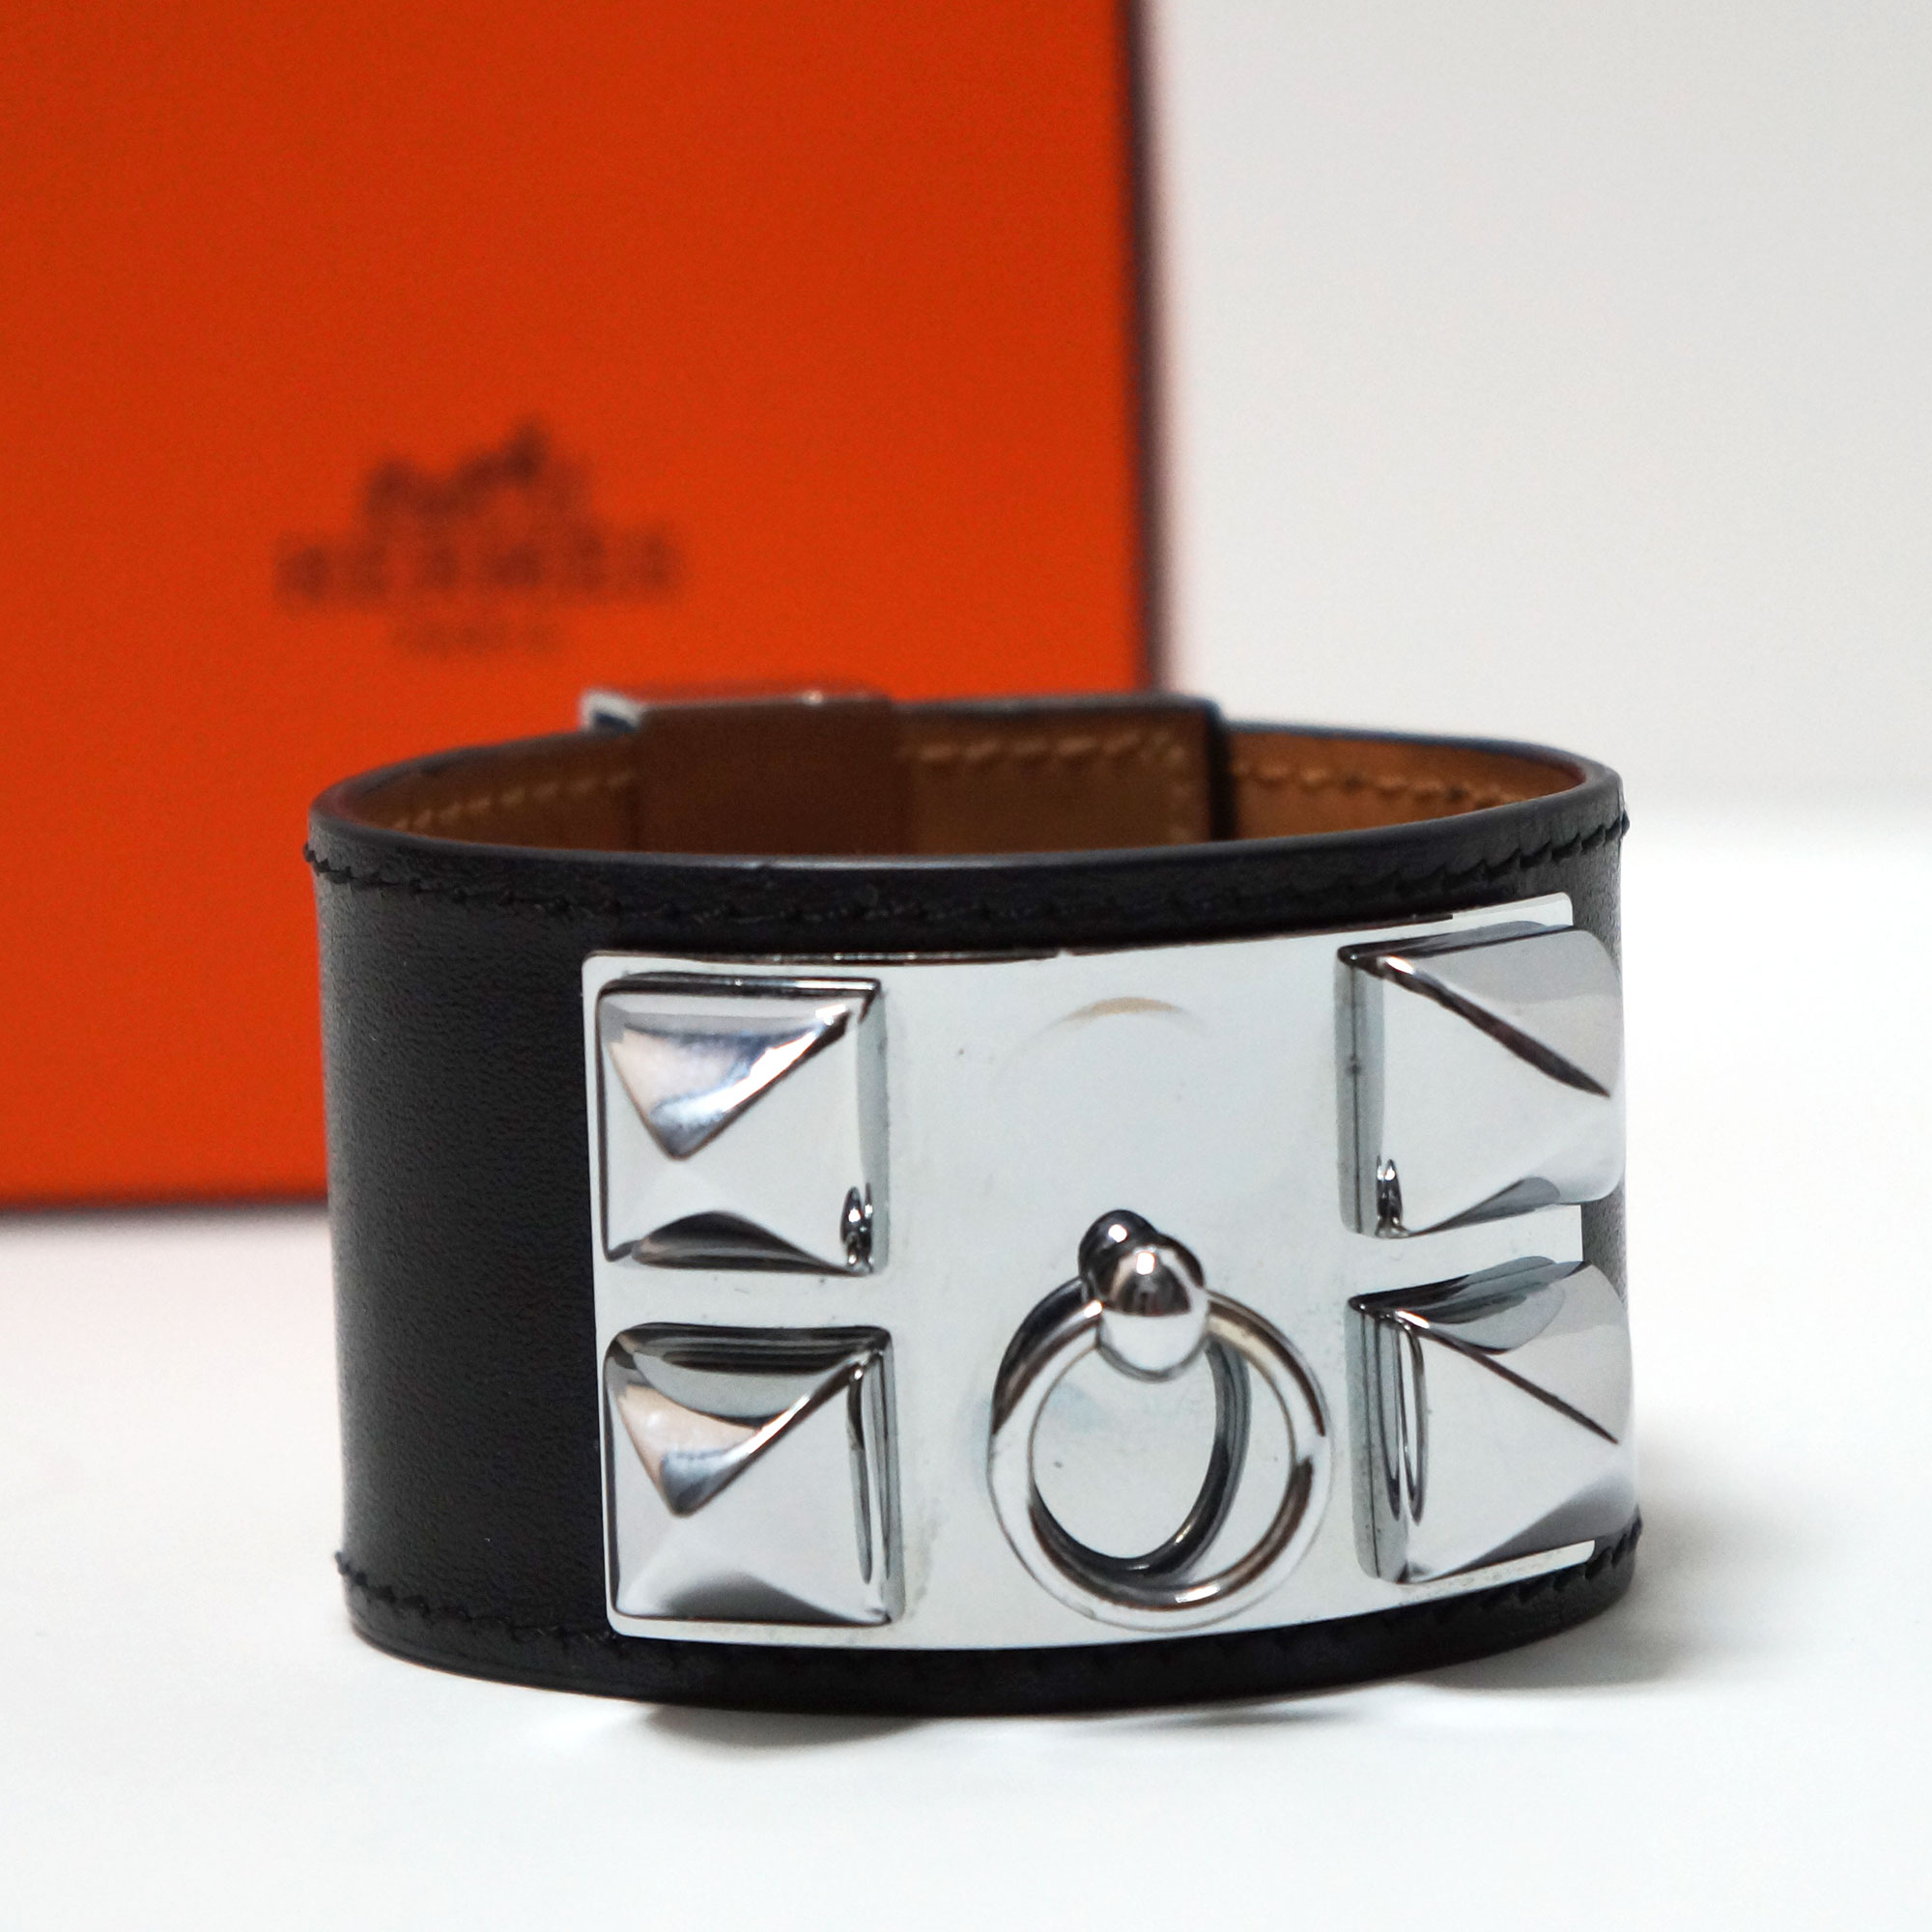 second bracelet fifth hand hermes chien products de the collier collection alligator